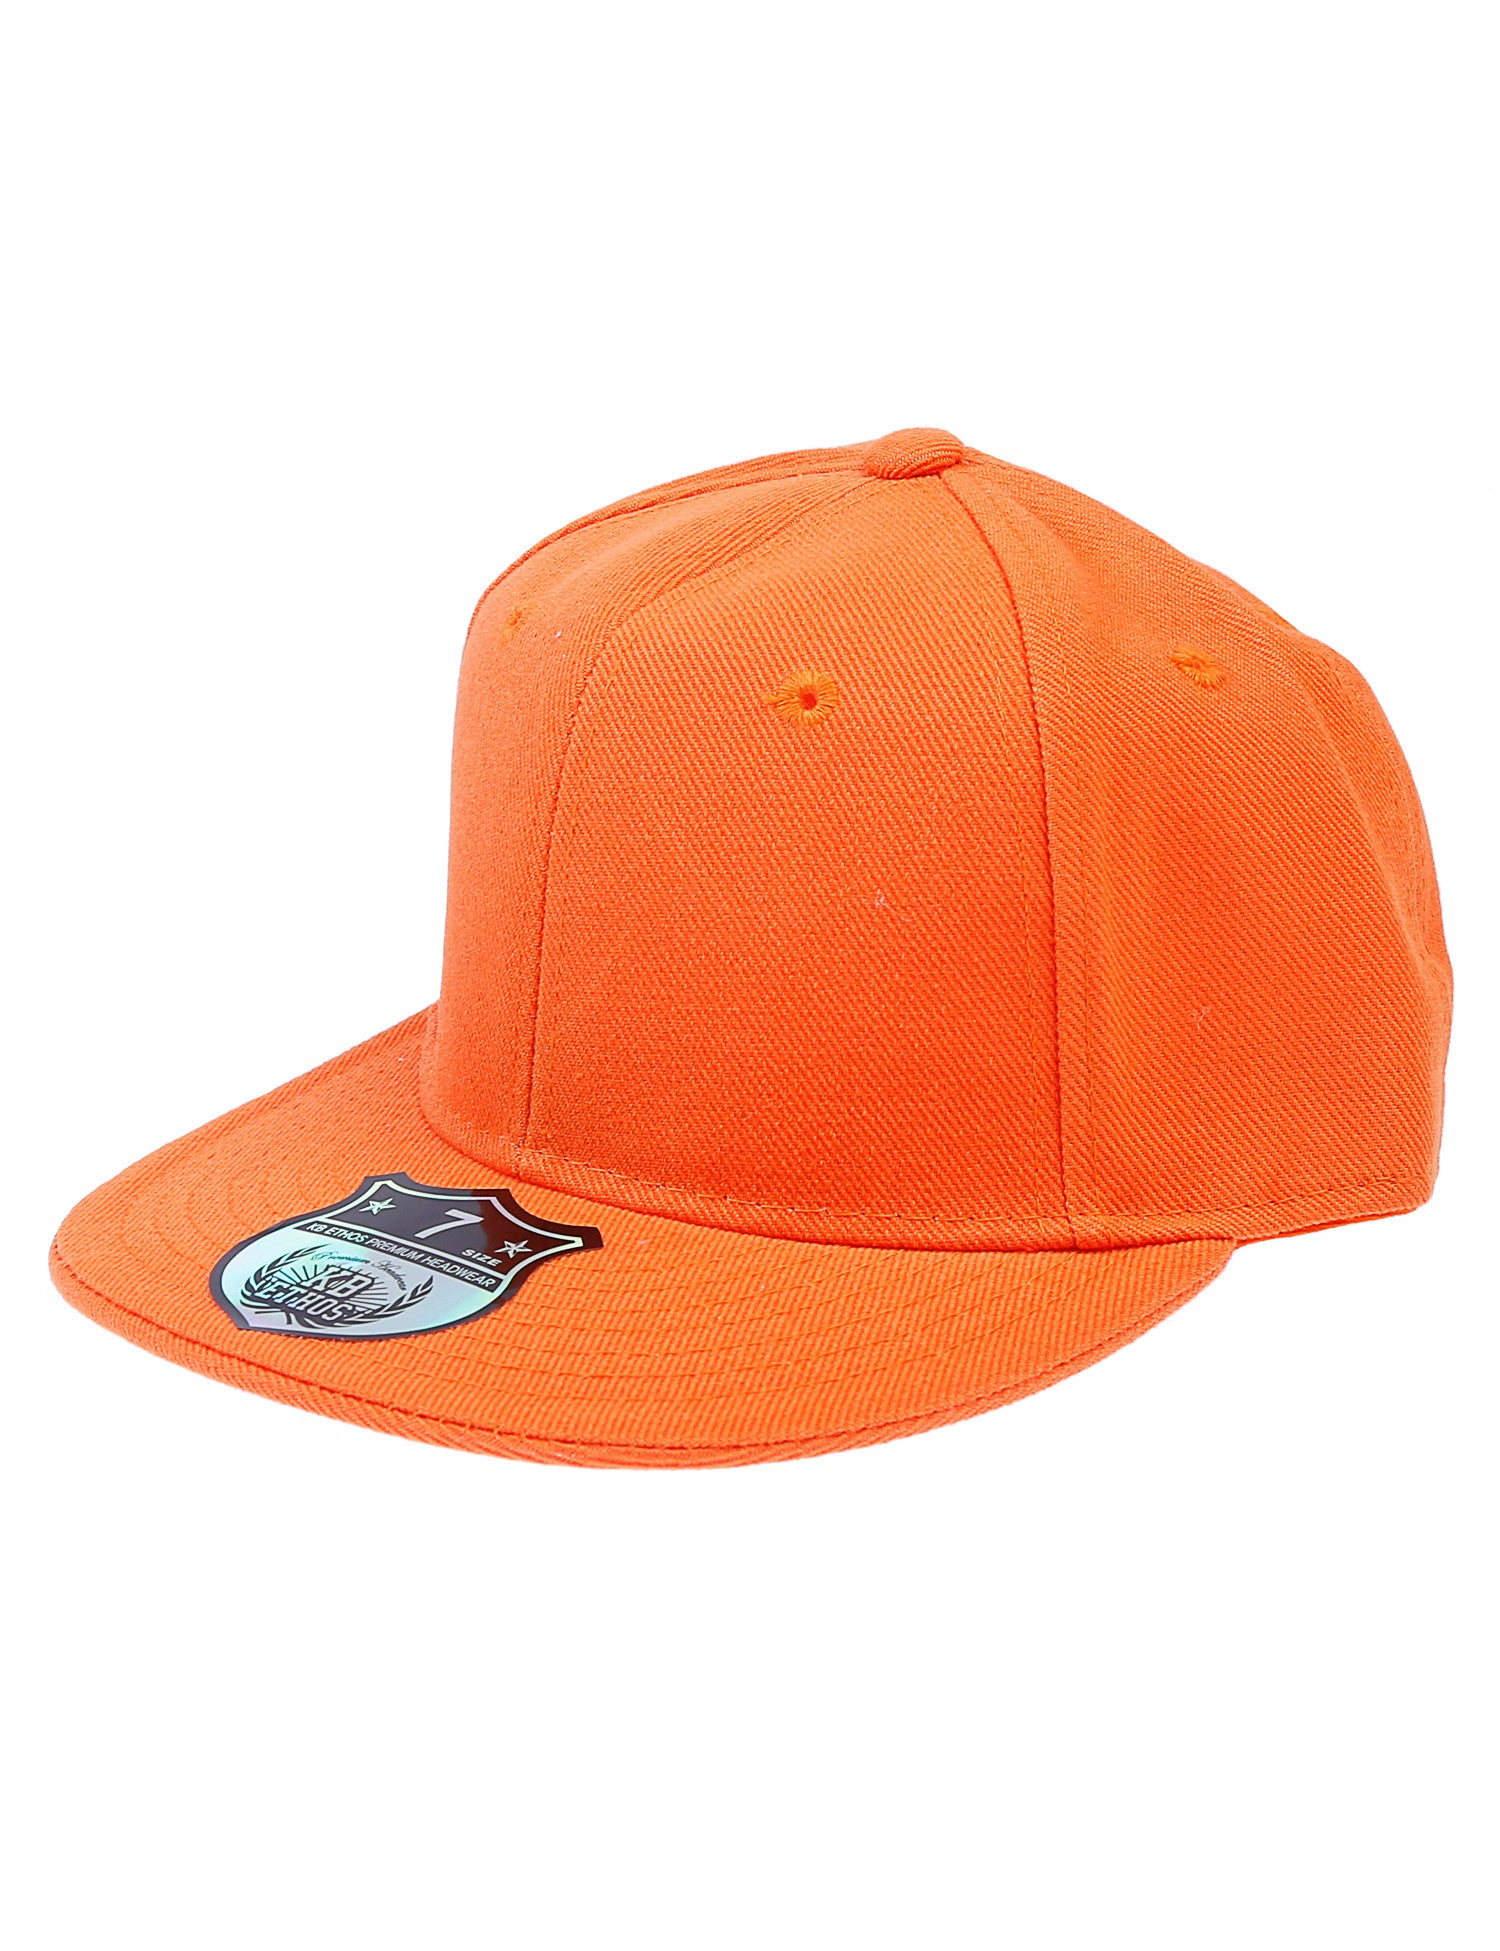 KB Ethos Blank Fullcap Orange